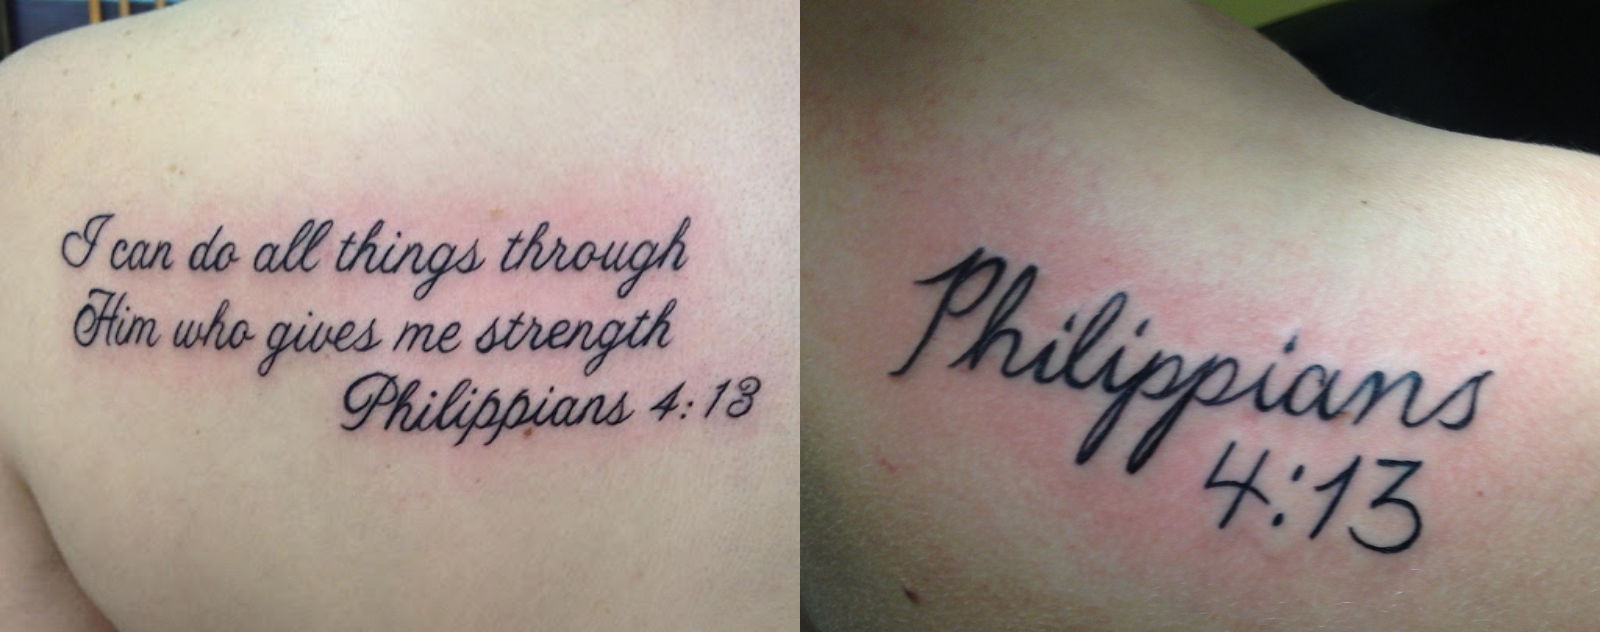 philippians-4-13-tattoo-shoulder-4